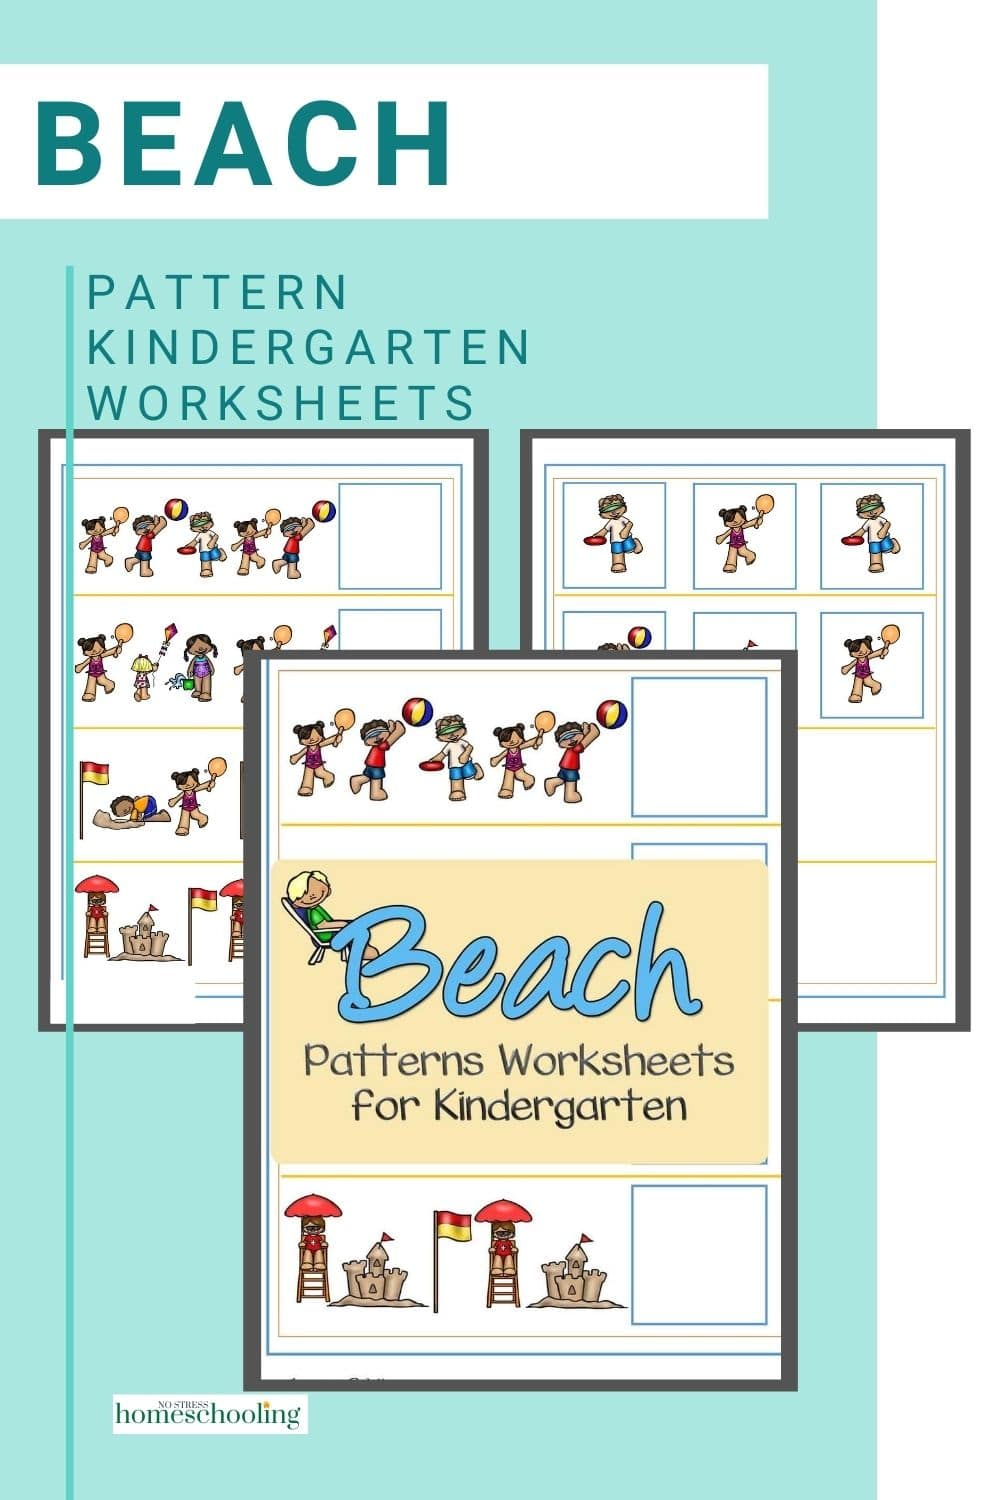 picture of beach patterns worksheets for kindergarten